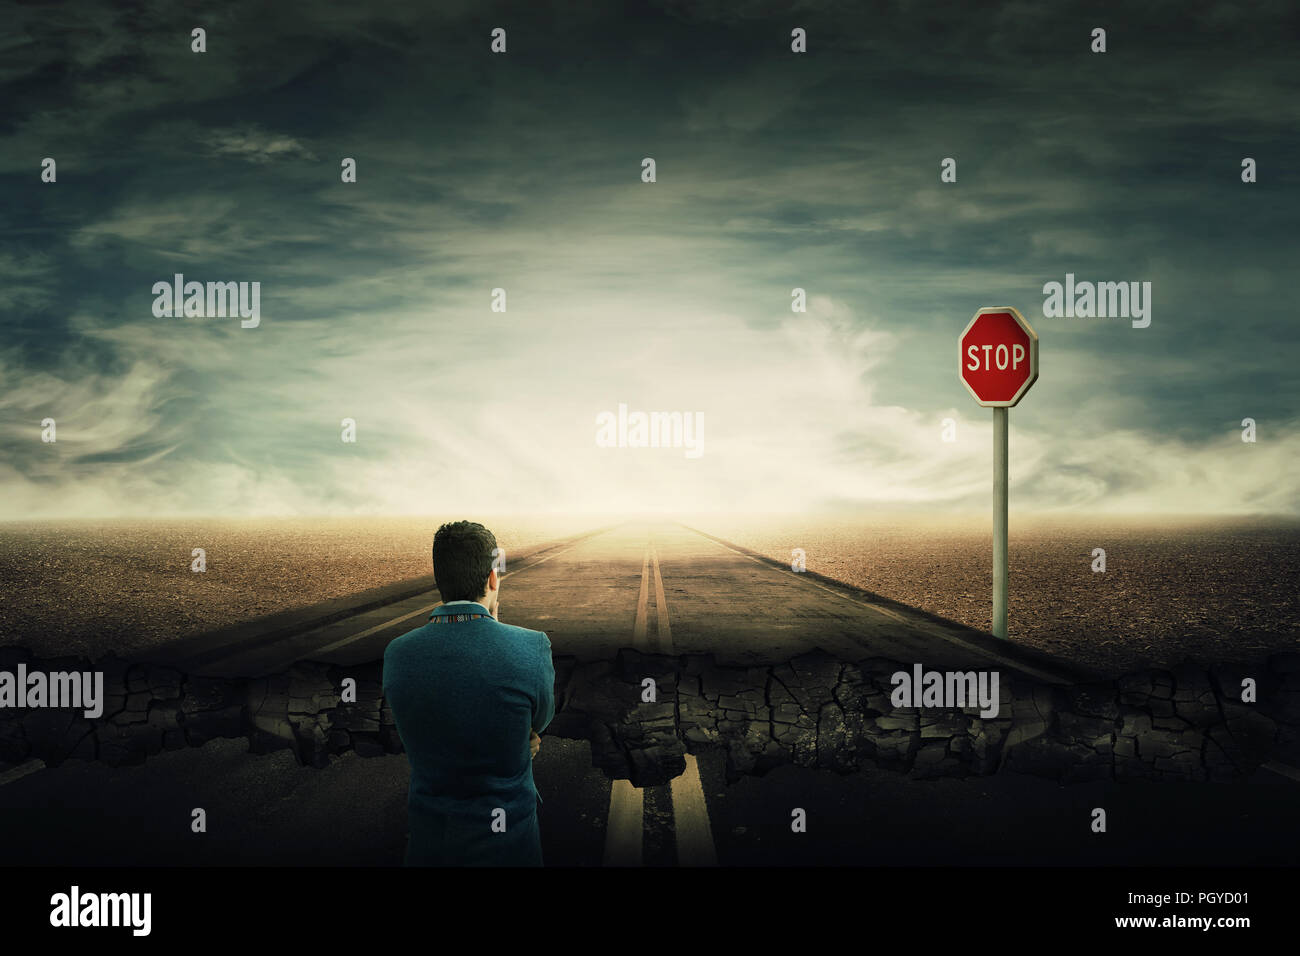 Surreal view as a man stand on a crushing asphalt road and a STOP red sign in front. Deep hole in the ground, chasm as broken way for businessman. Car - Stock Image